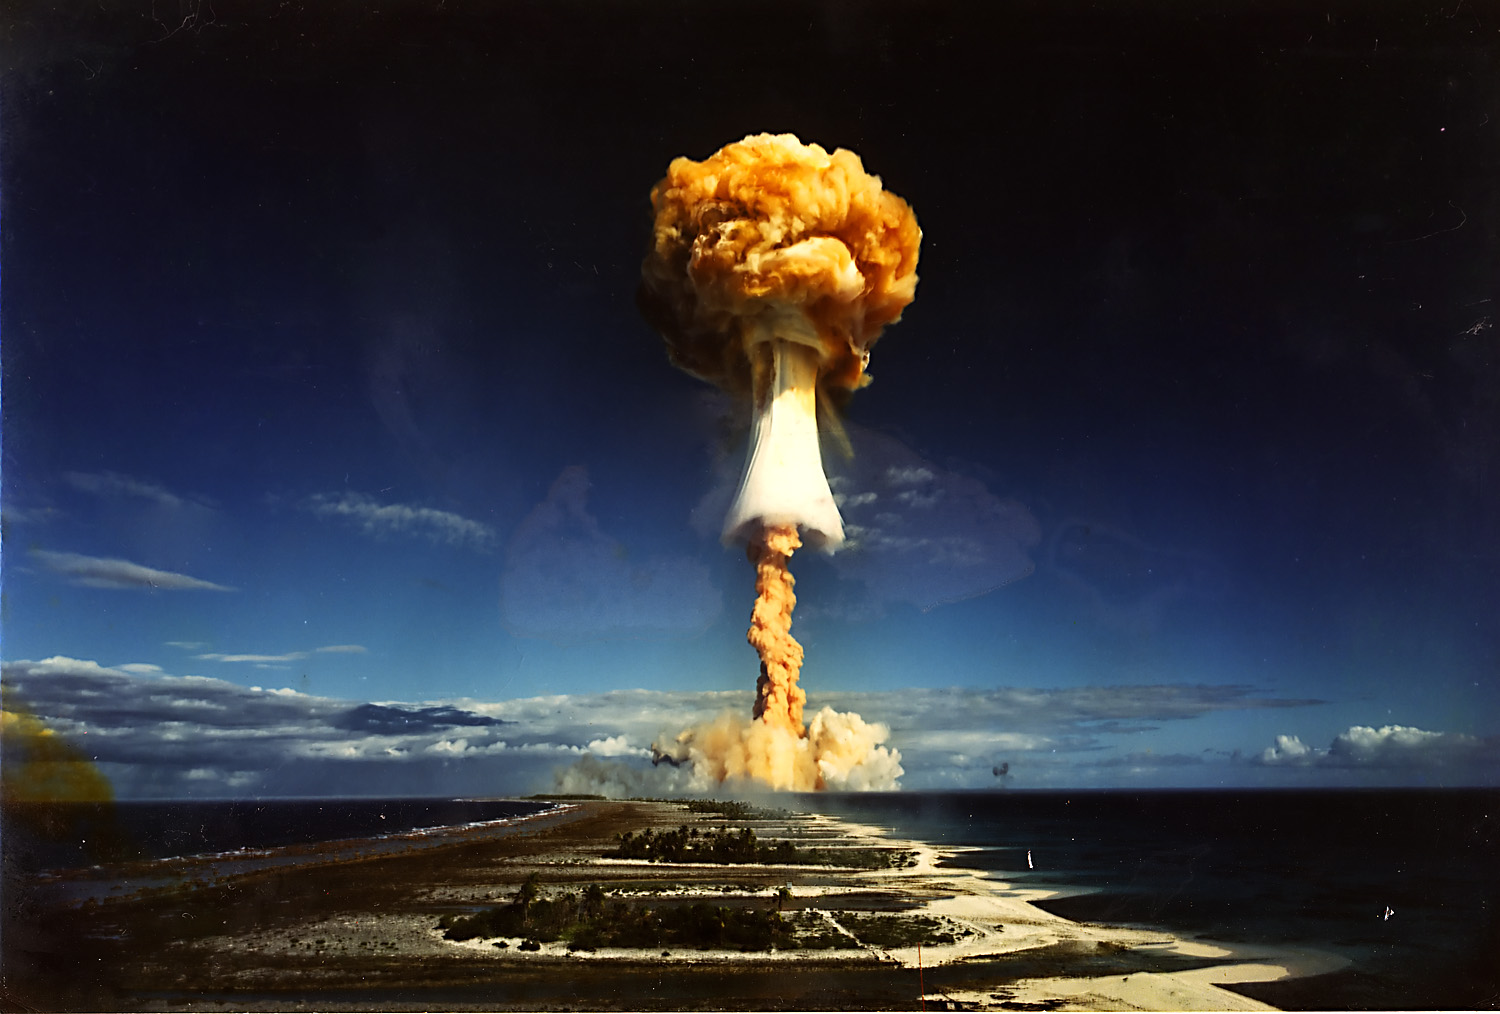 BBC/Bergmann Pictures LTD: French nuclear test Encelade in the South Pacific, 1971